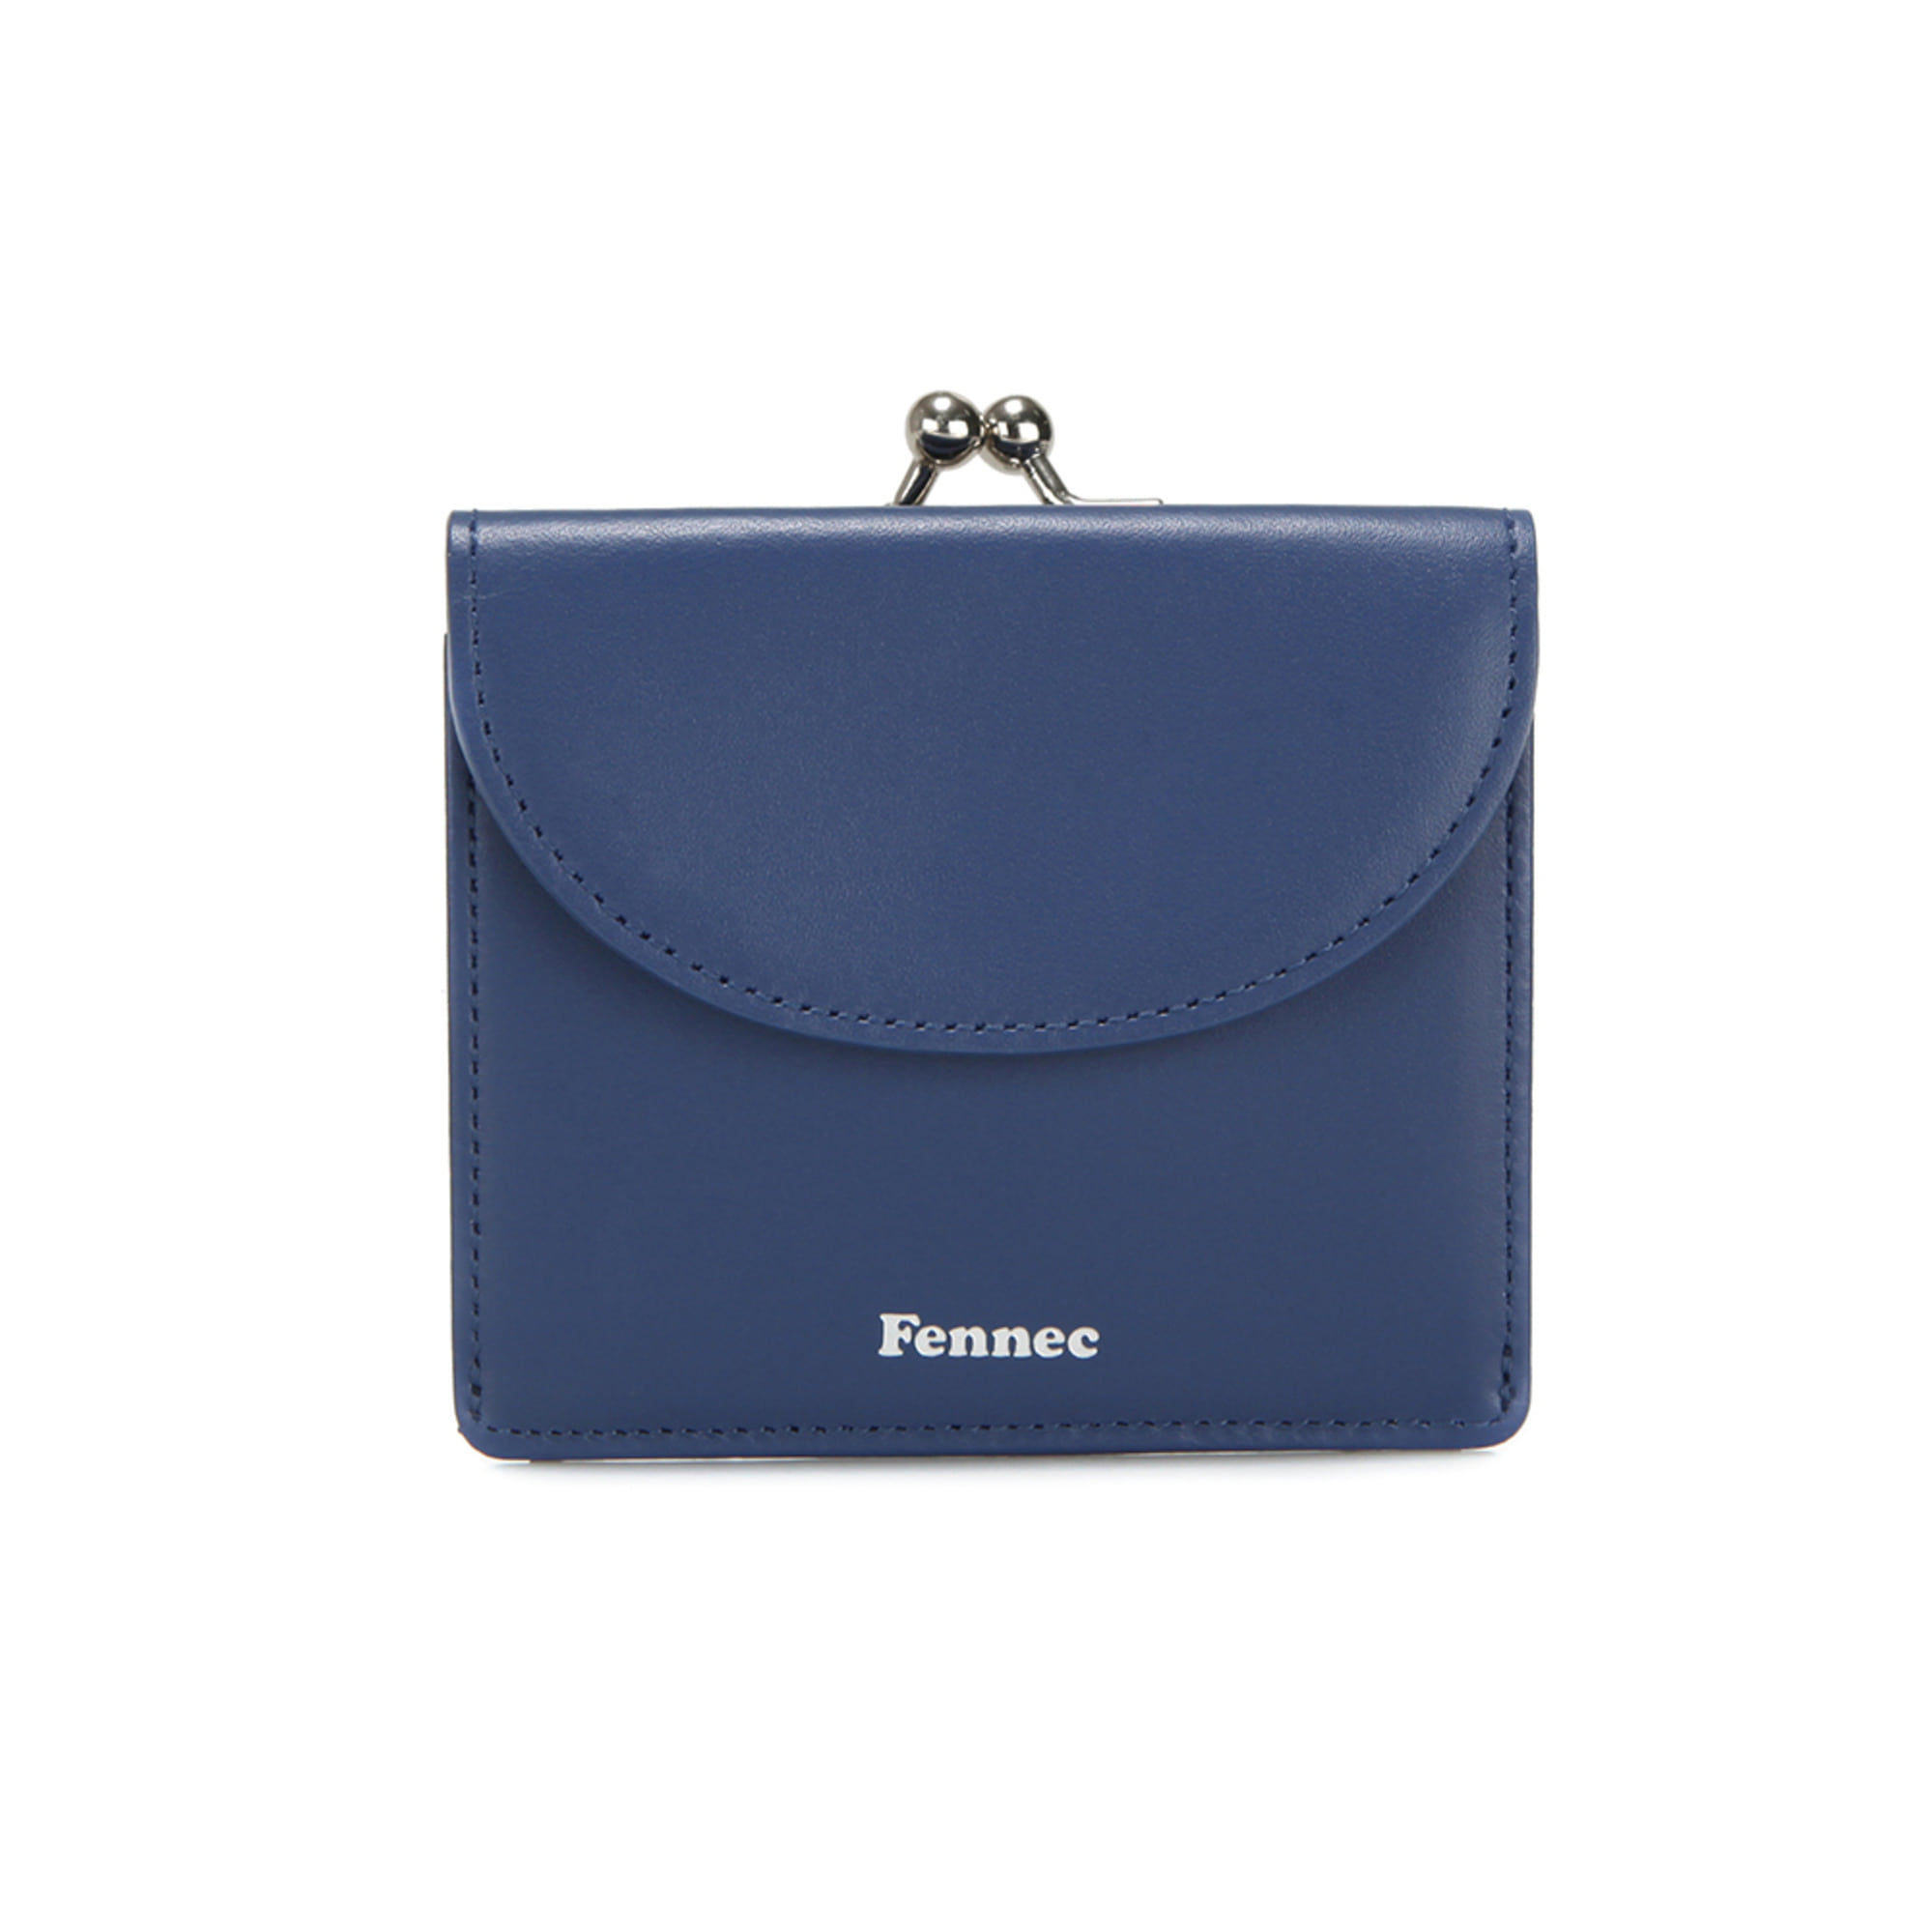 [DISCONTINUE] FRAME CARD POCKET - DUSTY BLUE